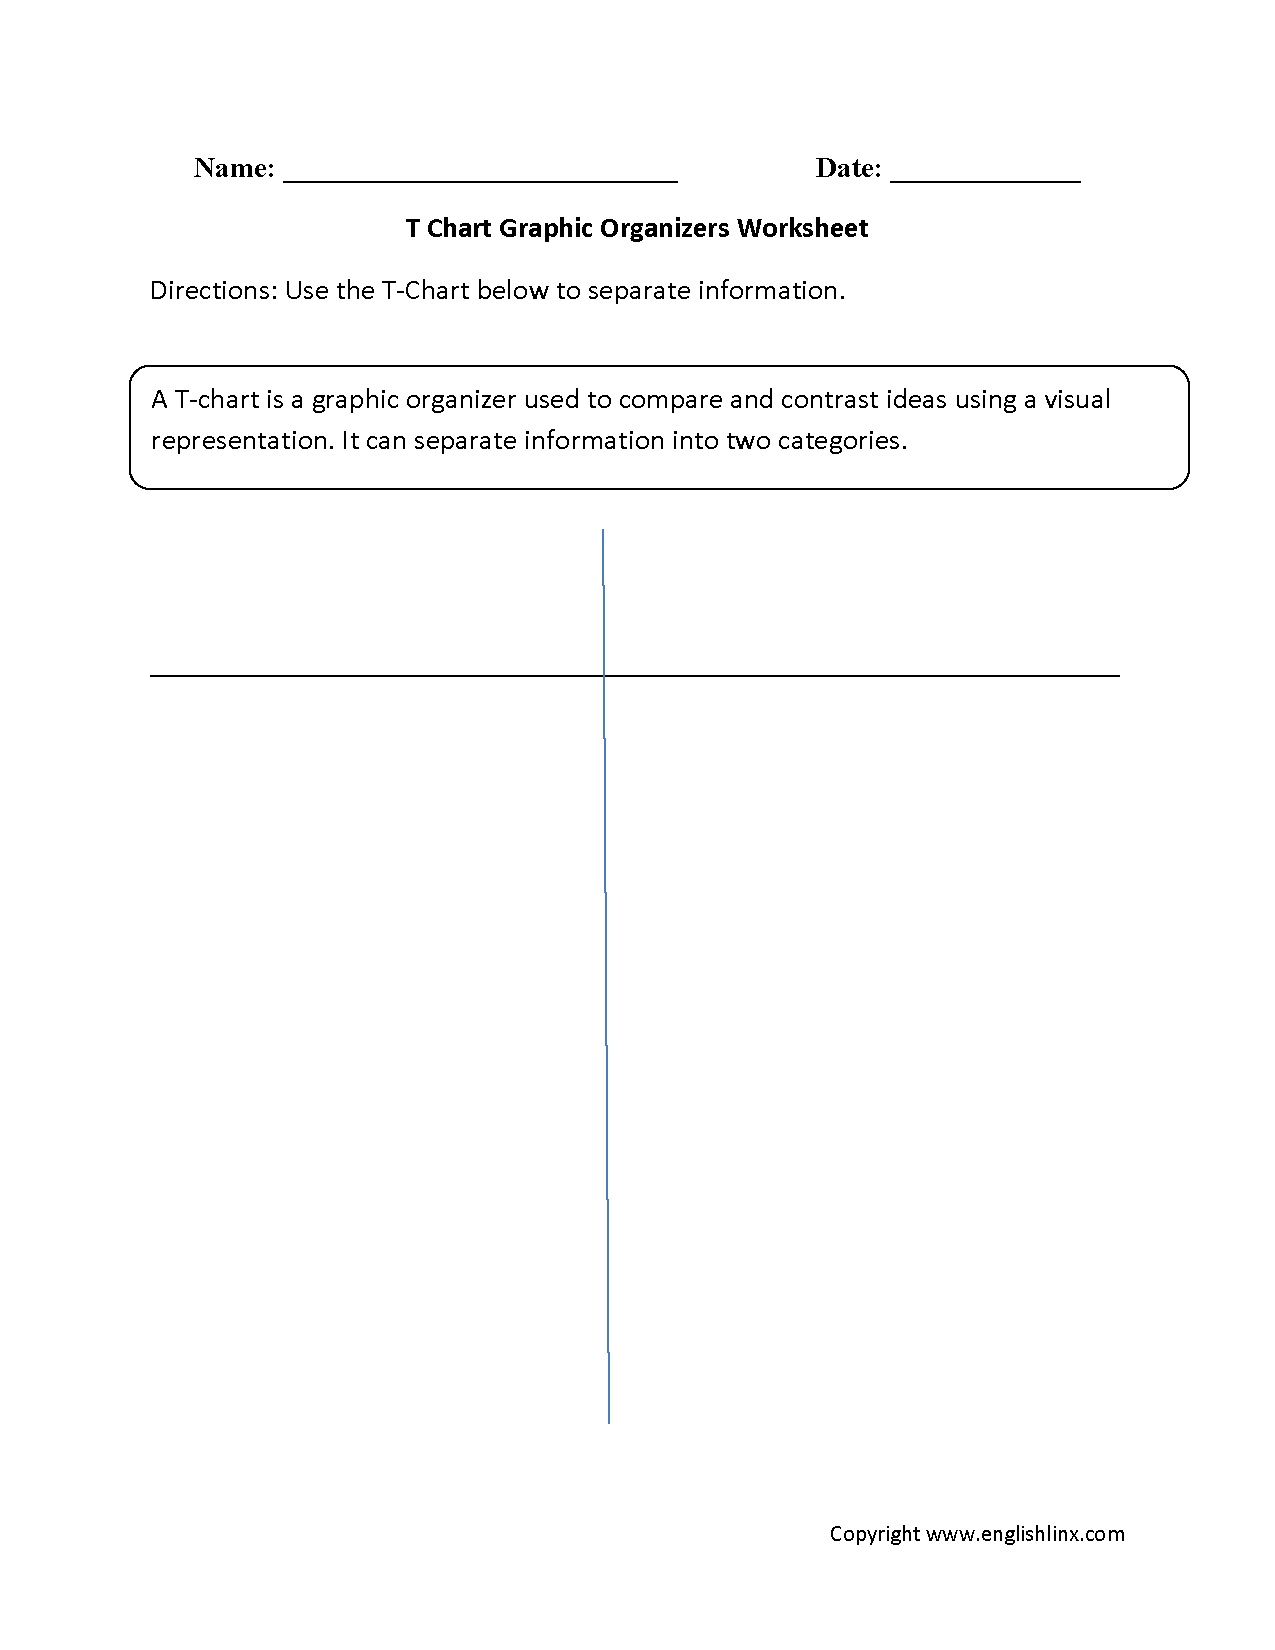 T Chart Graphic Organizers Worksheets